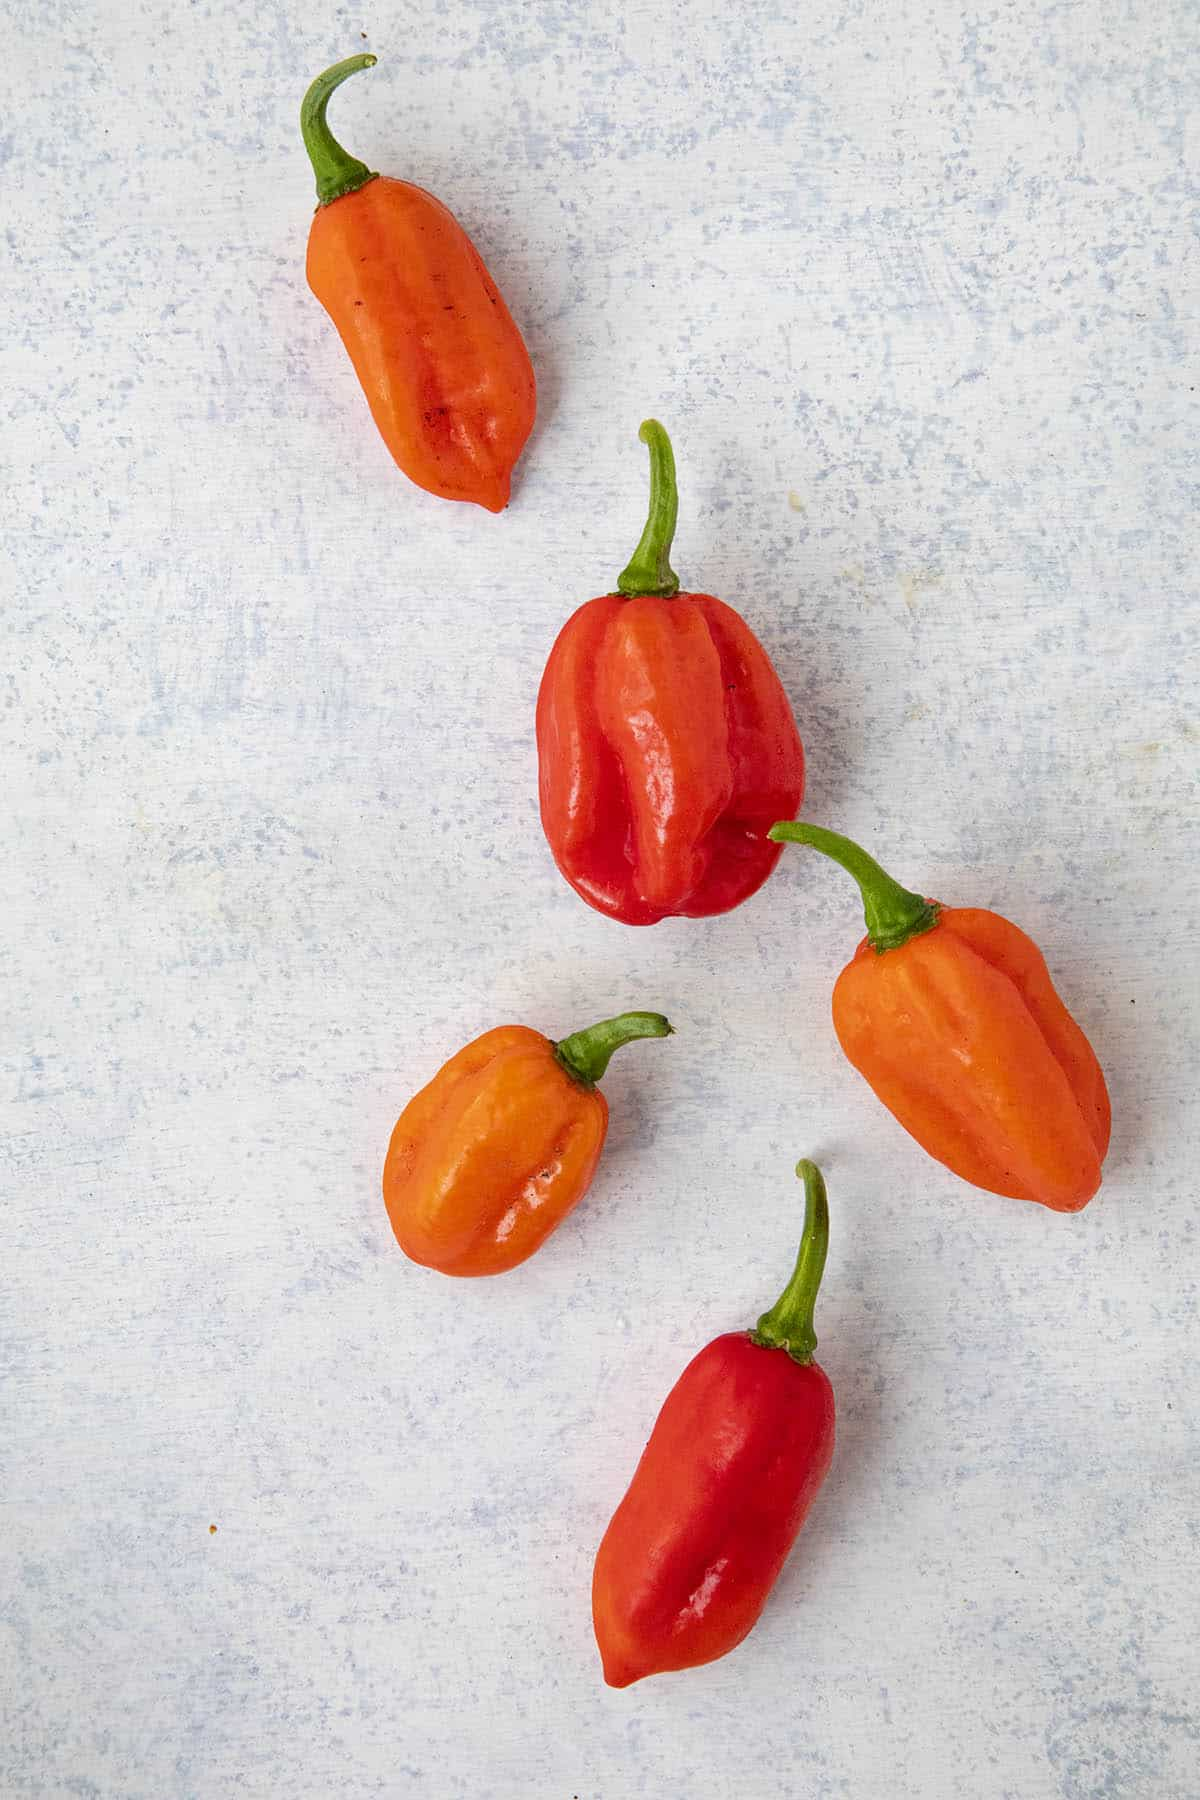 Aji Dulce Chili Peppers